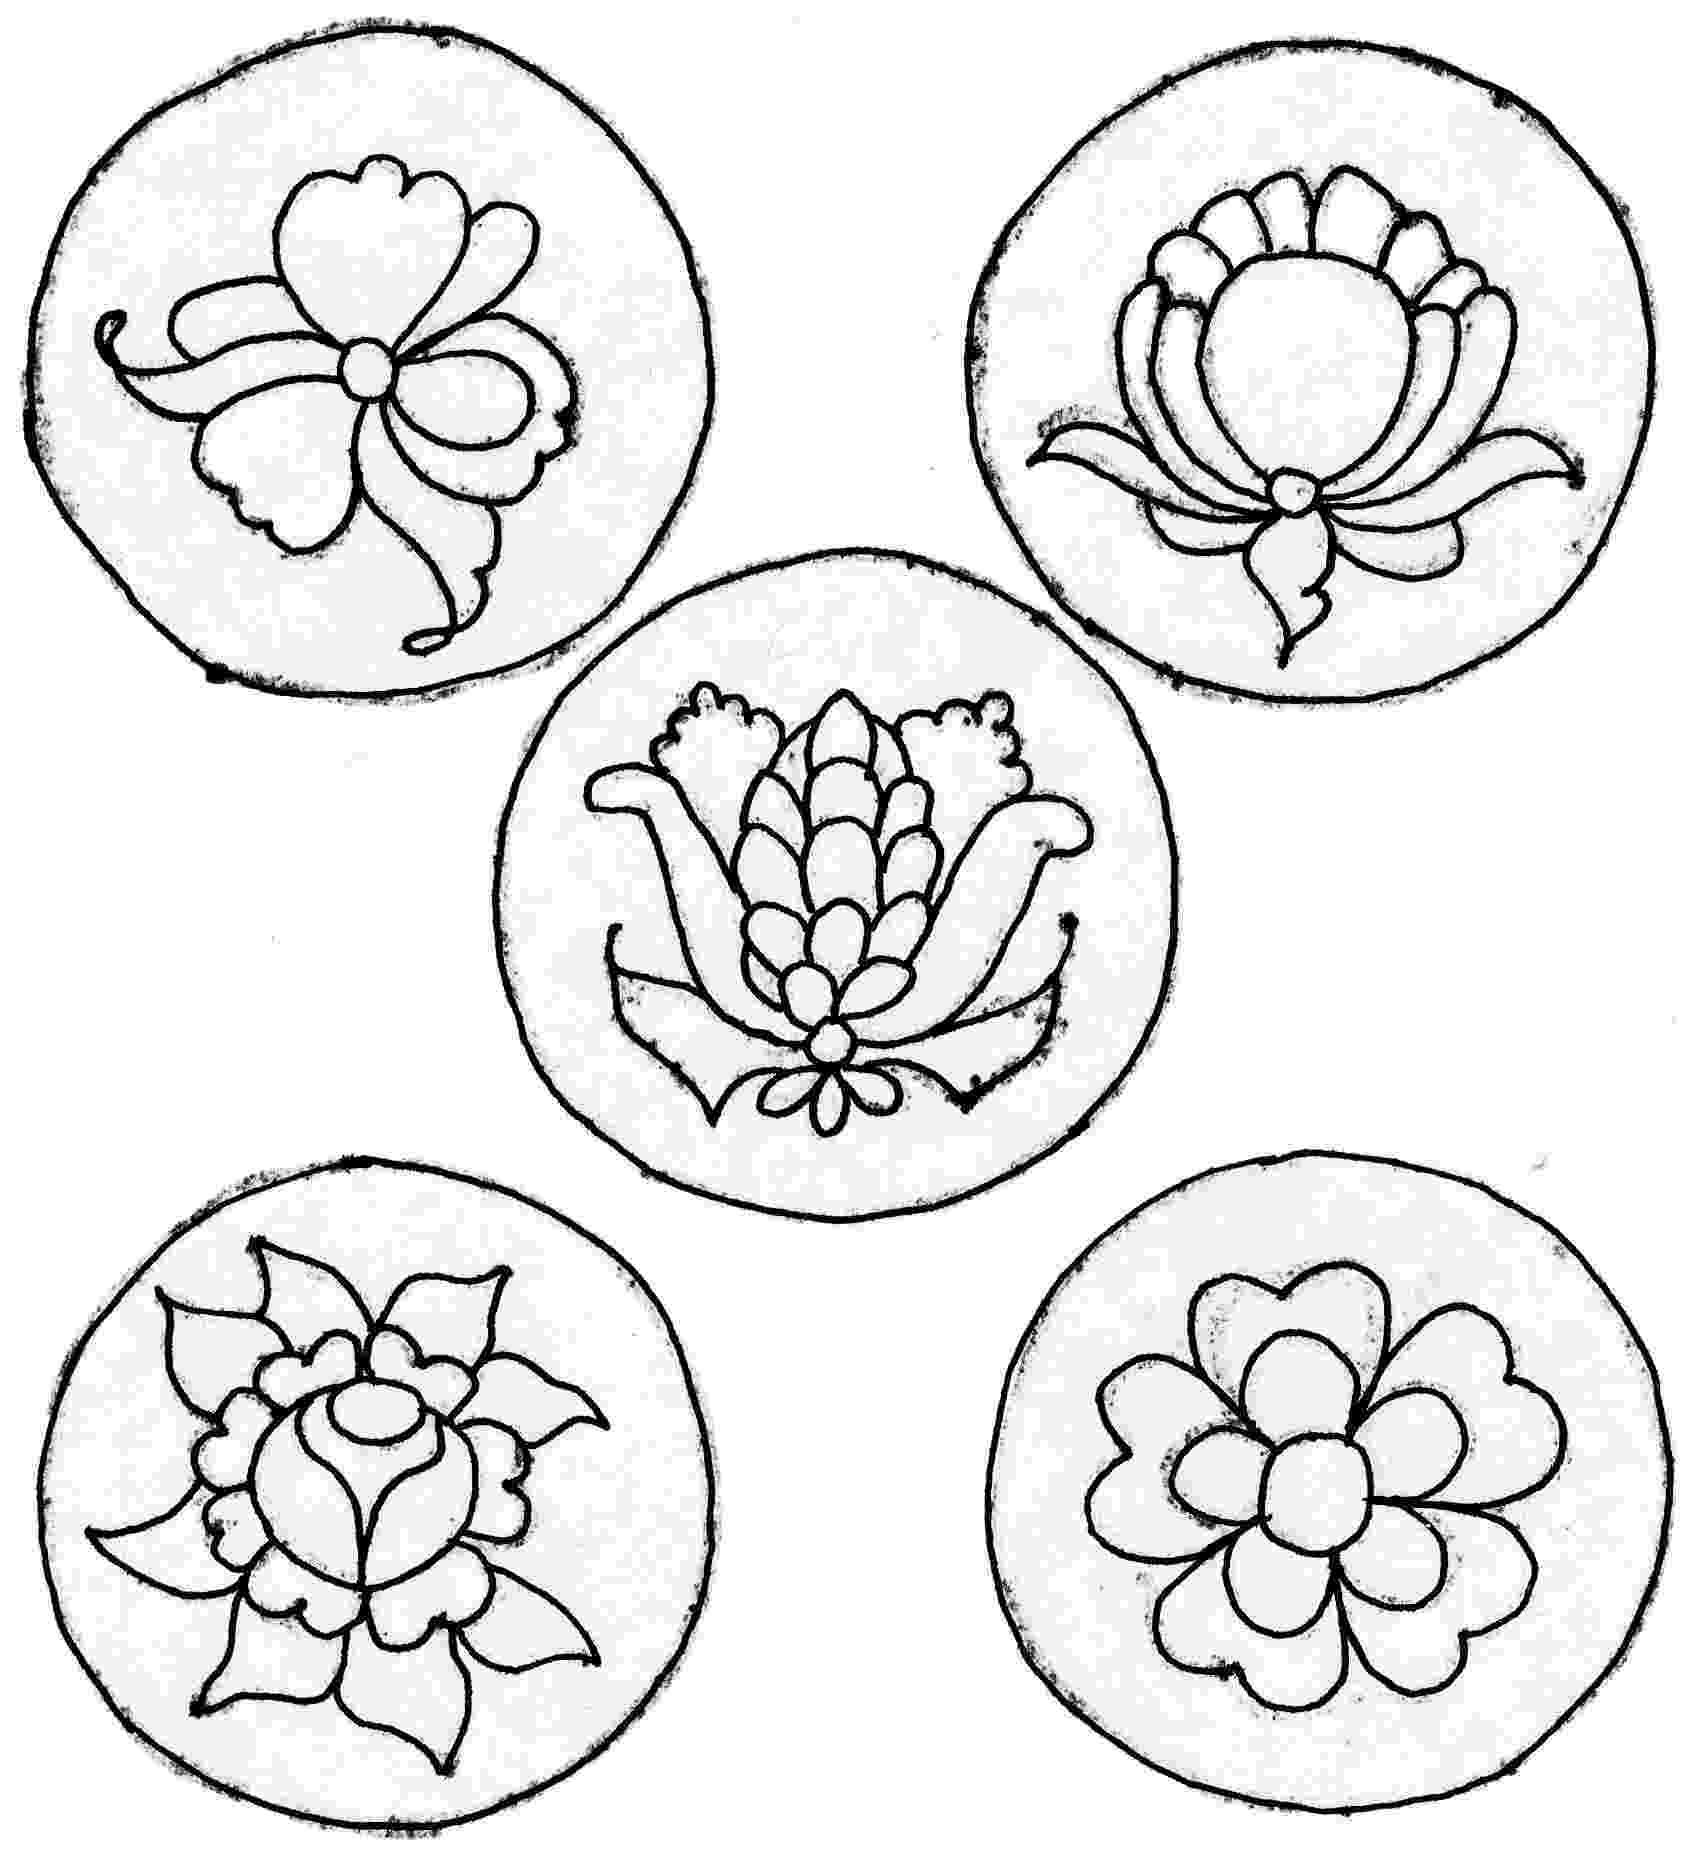 rosemaling coloring pages coloring pages coloring pages rosemaling